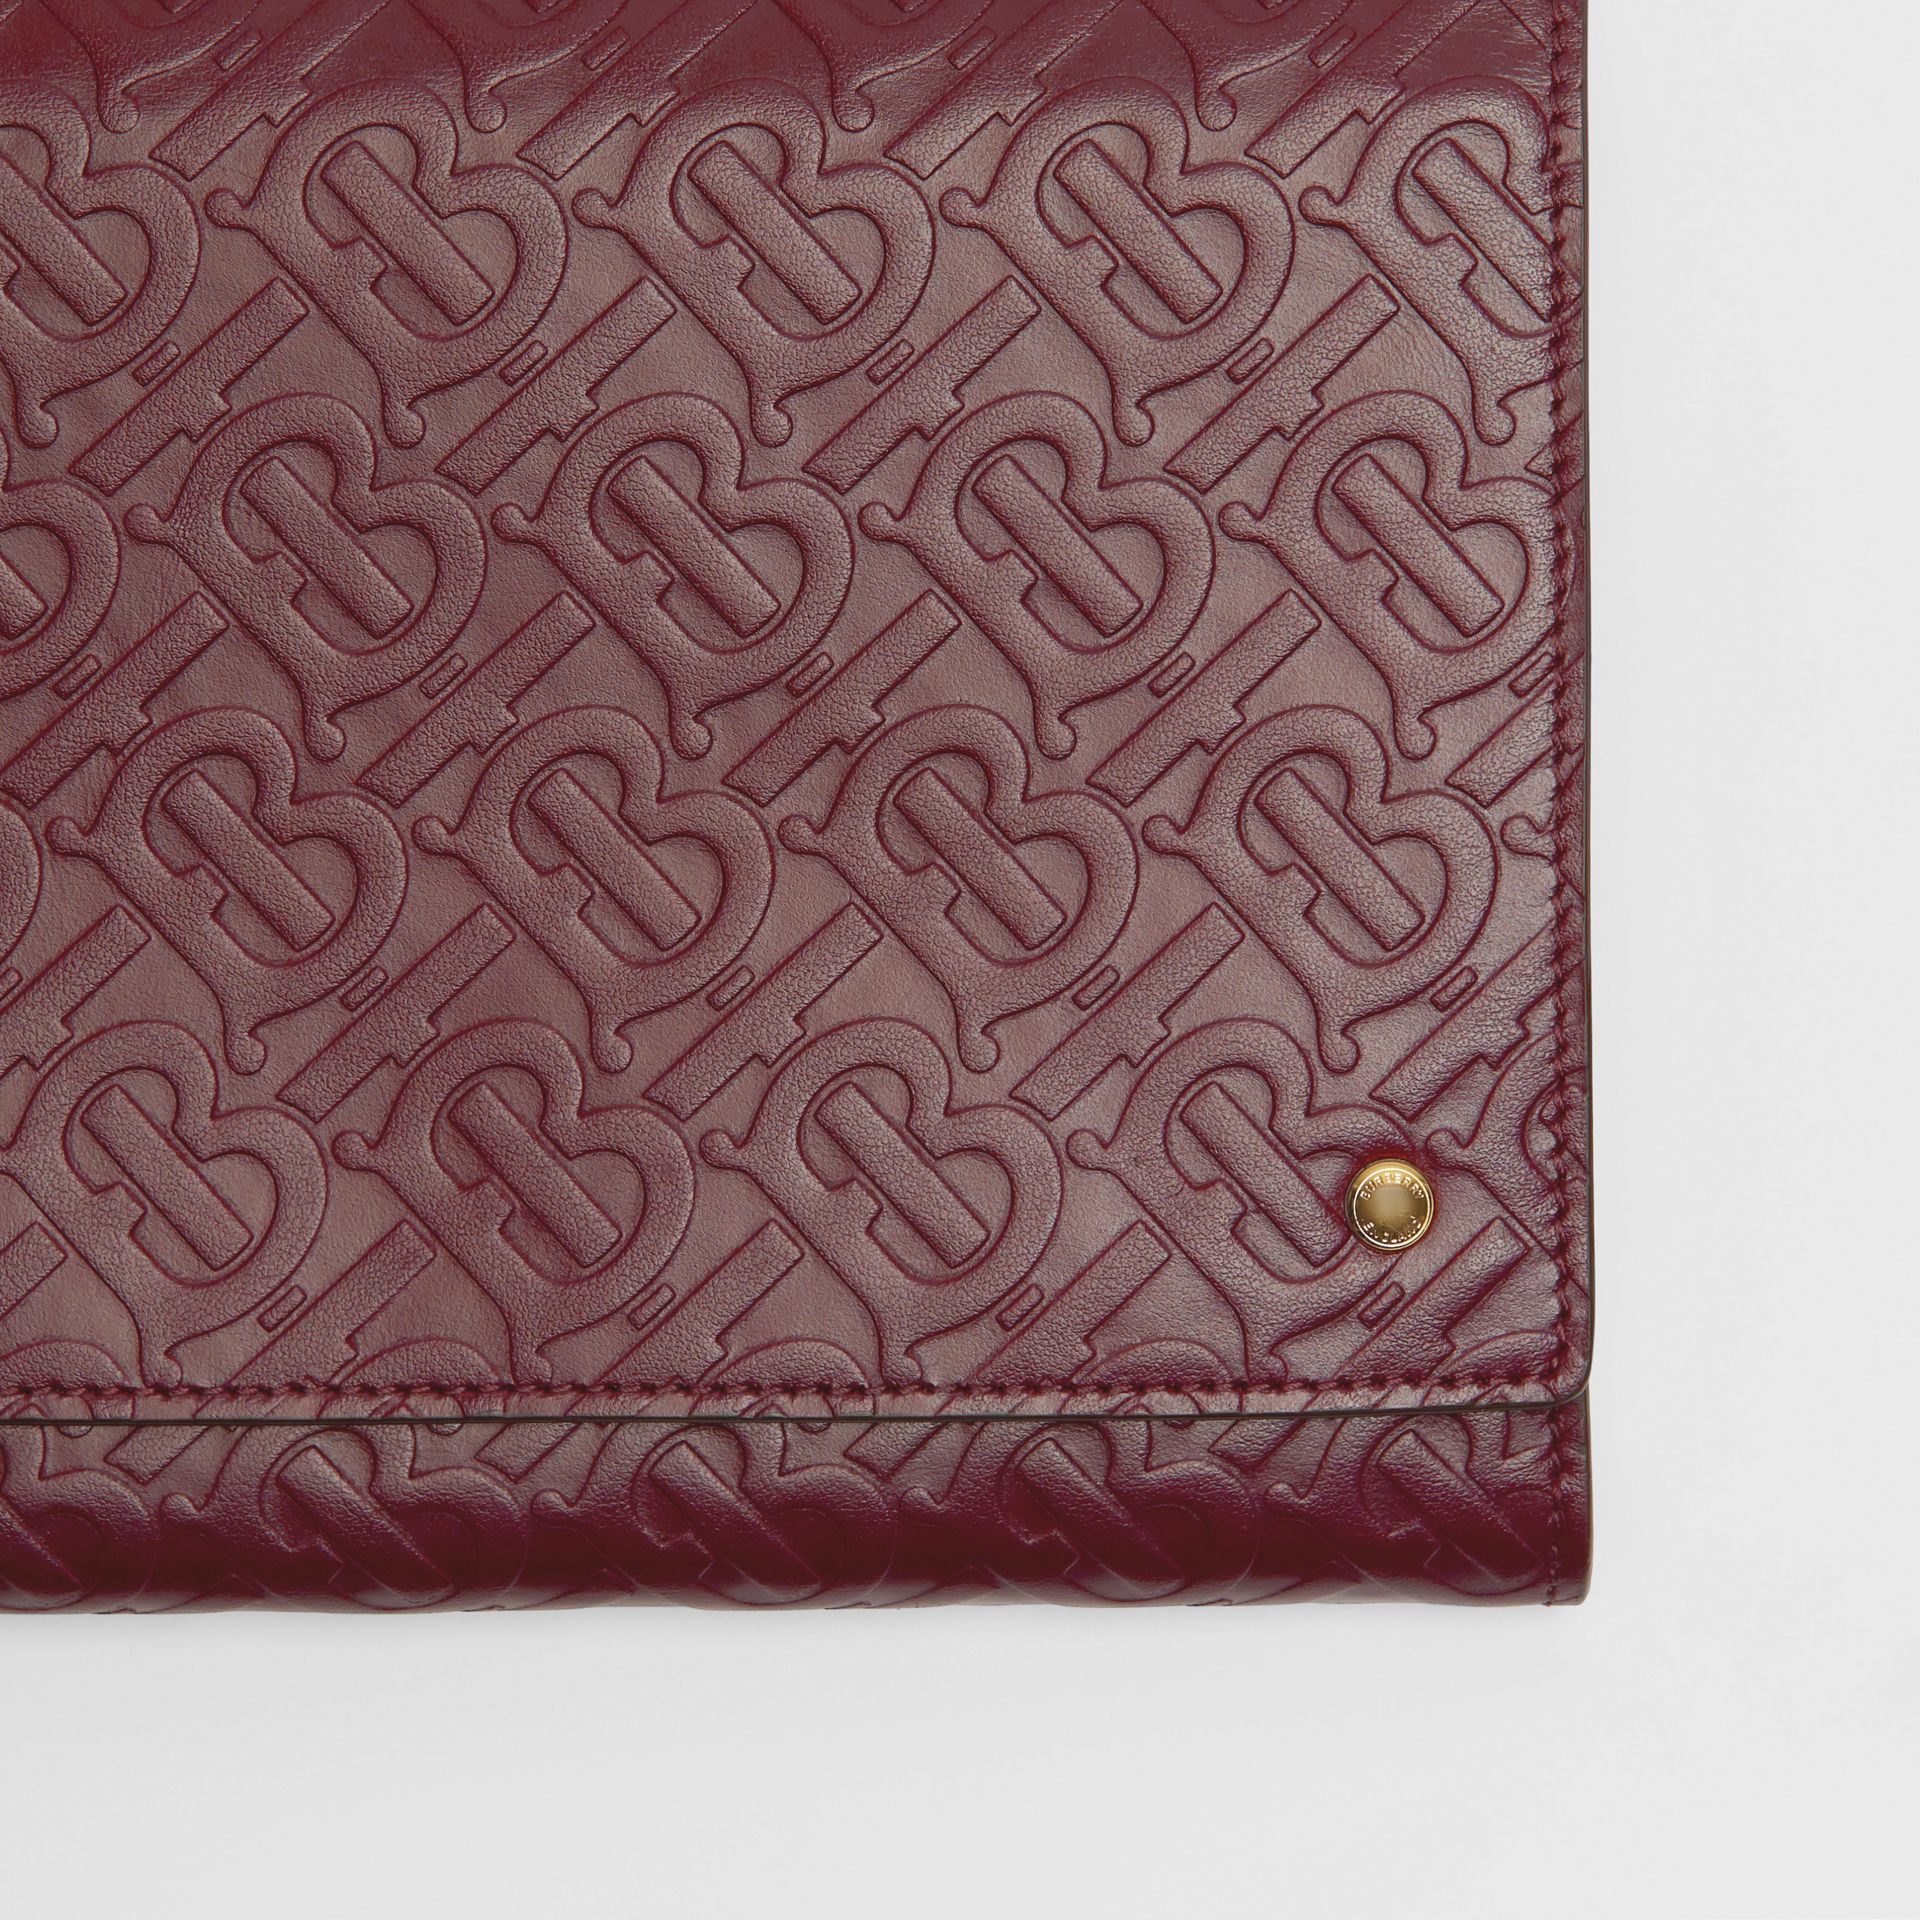 Small Monogram Leather Bag with Detachable Strap in Oxblood - Women | Burberry - gallery image 1